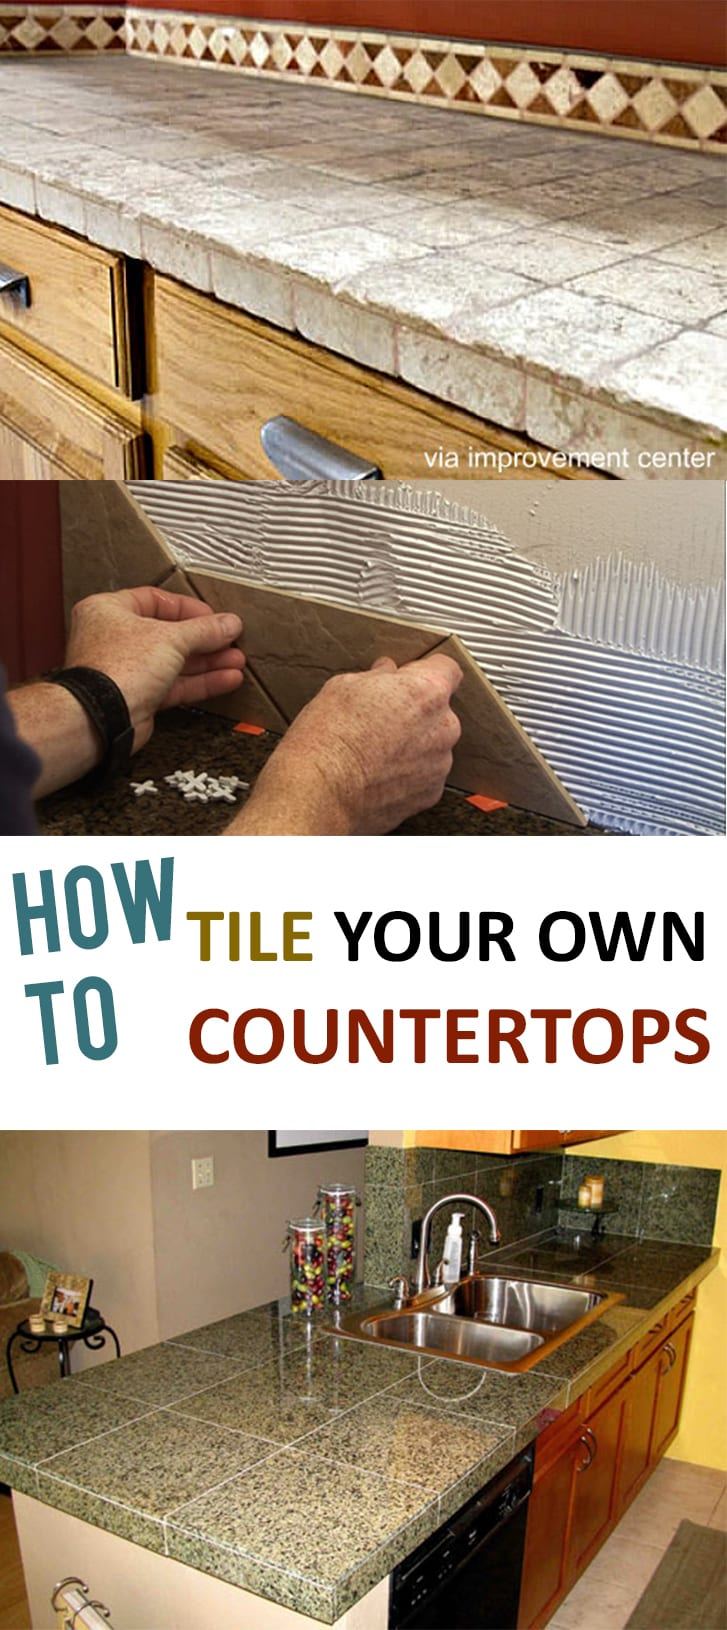 How To Tile Your Own Countertops How To Build It